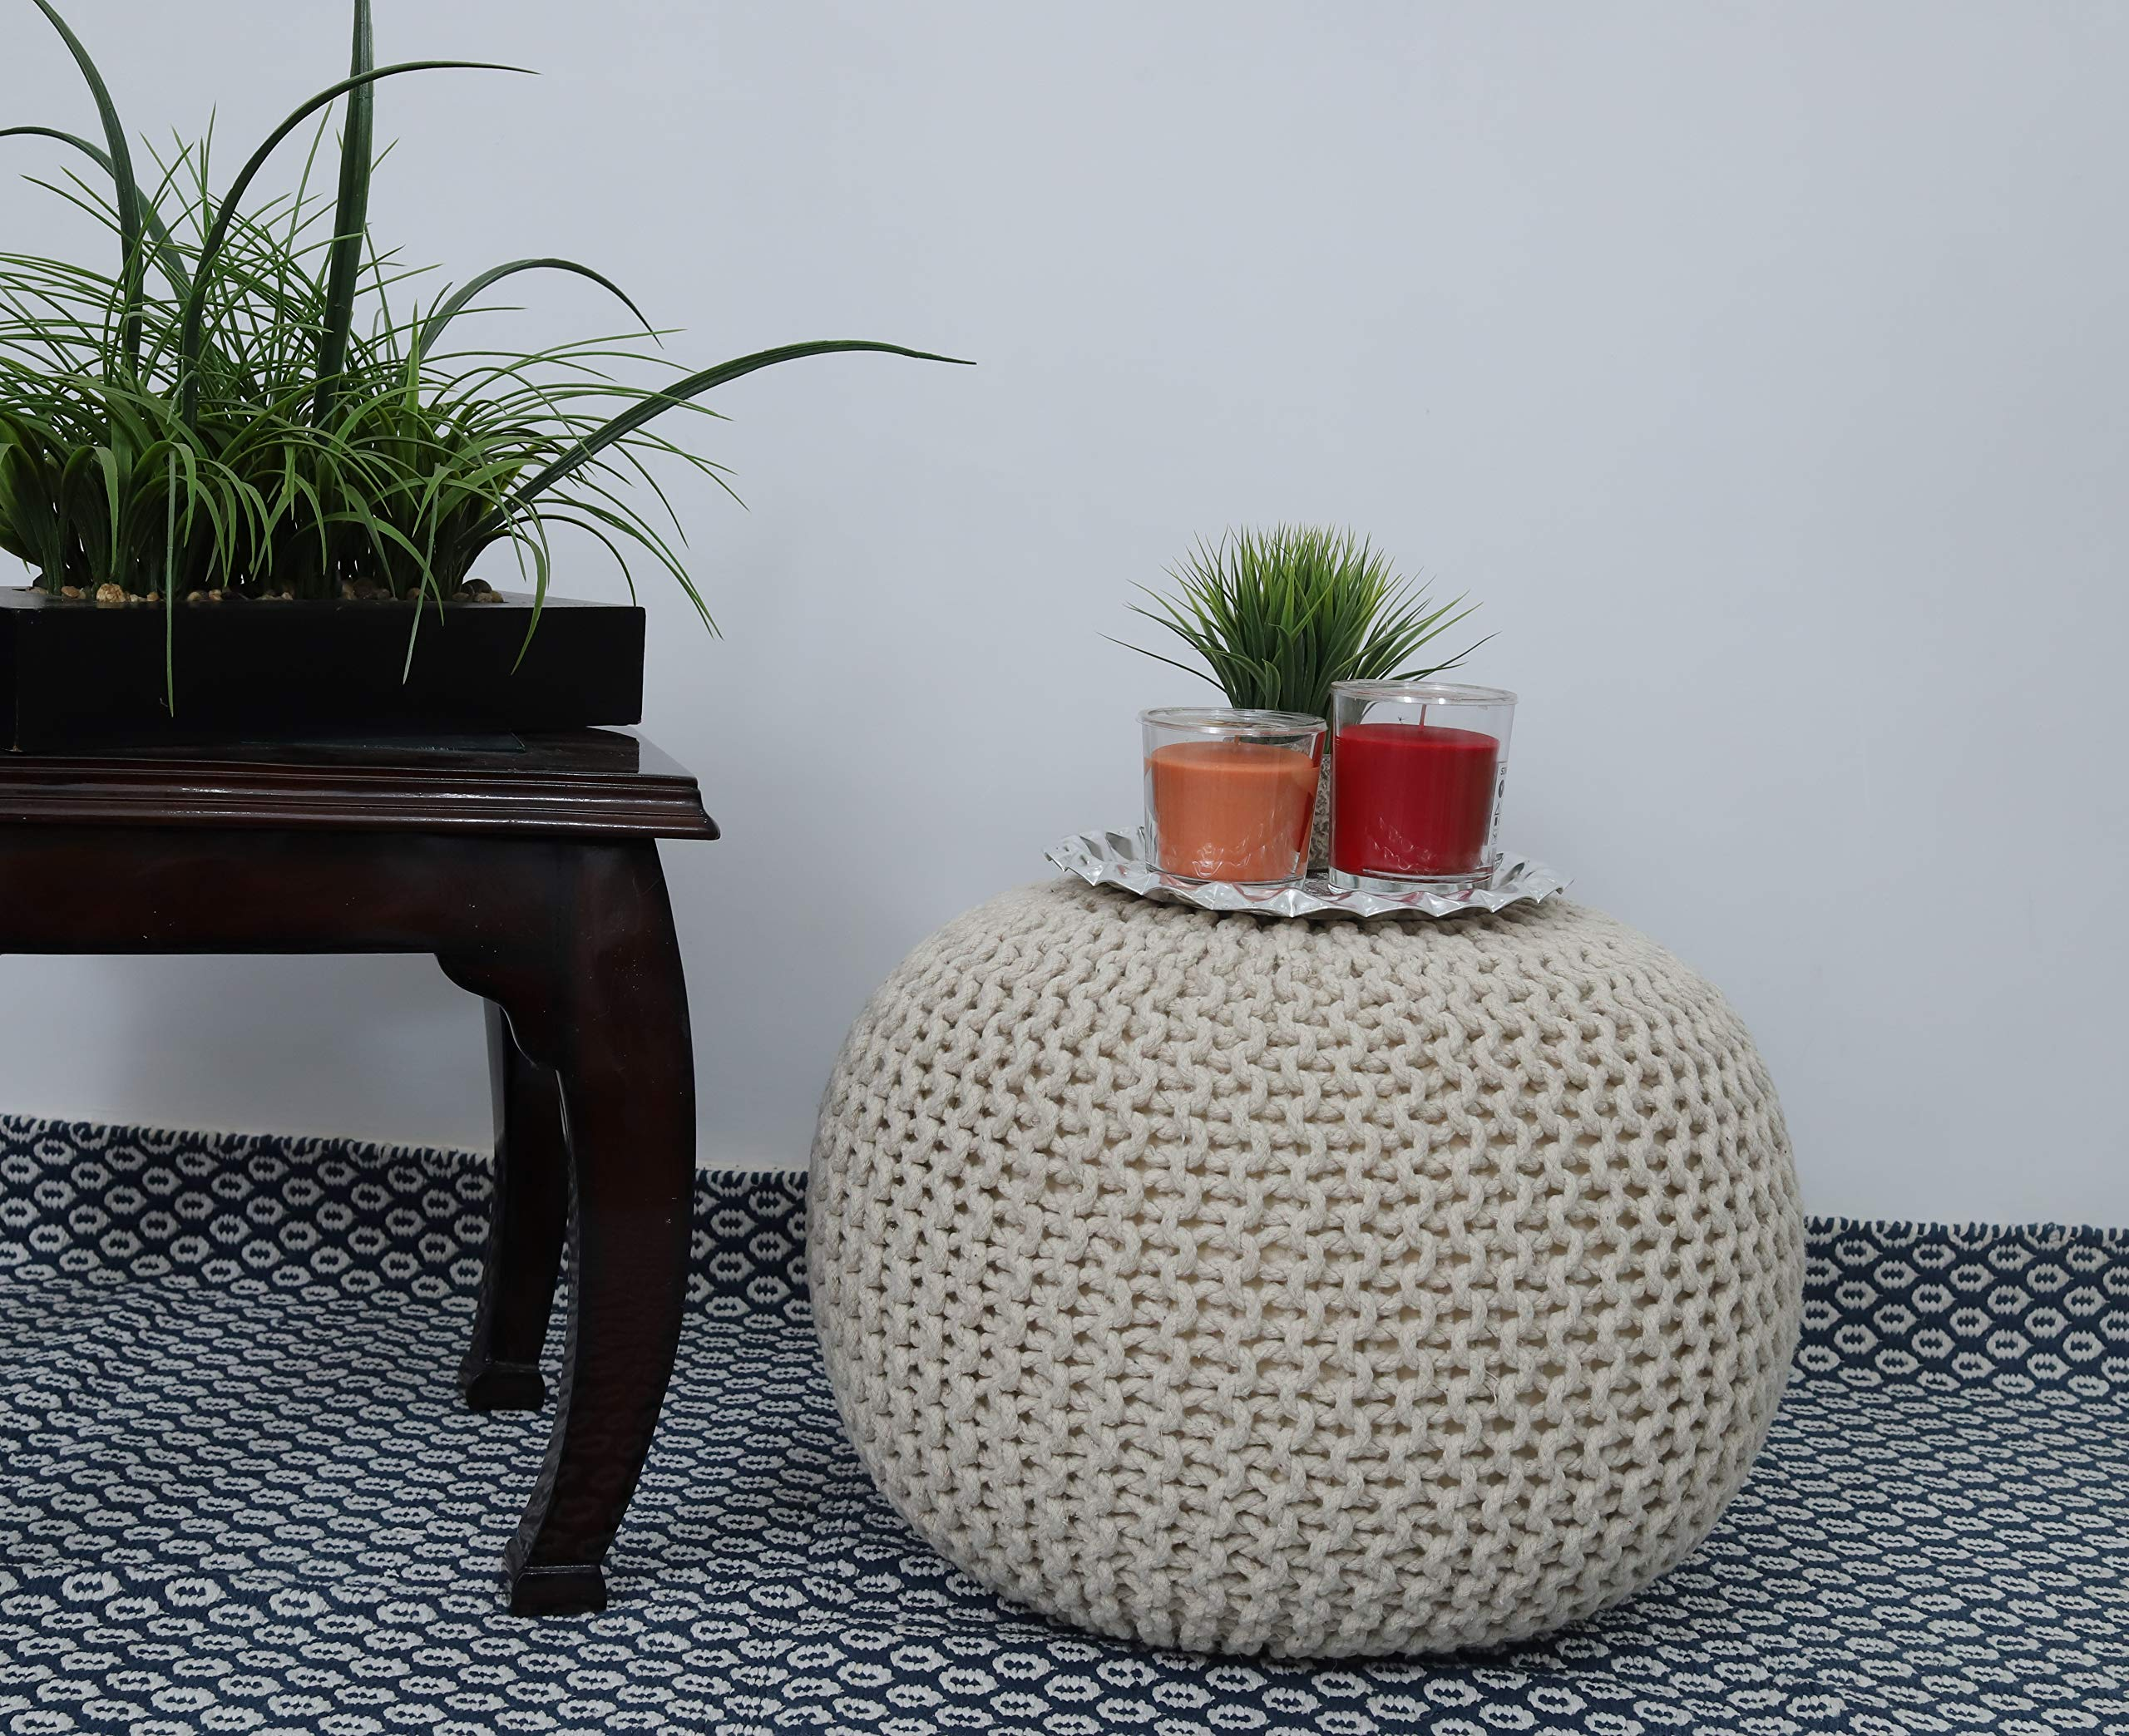 Frenish Décor Hand Knitted Cotton Ottoman Pouf Footrest 20x20x14 INCH, Living Room Accent seat (Natural) by Fernish Décor